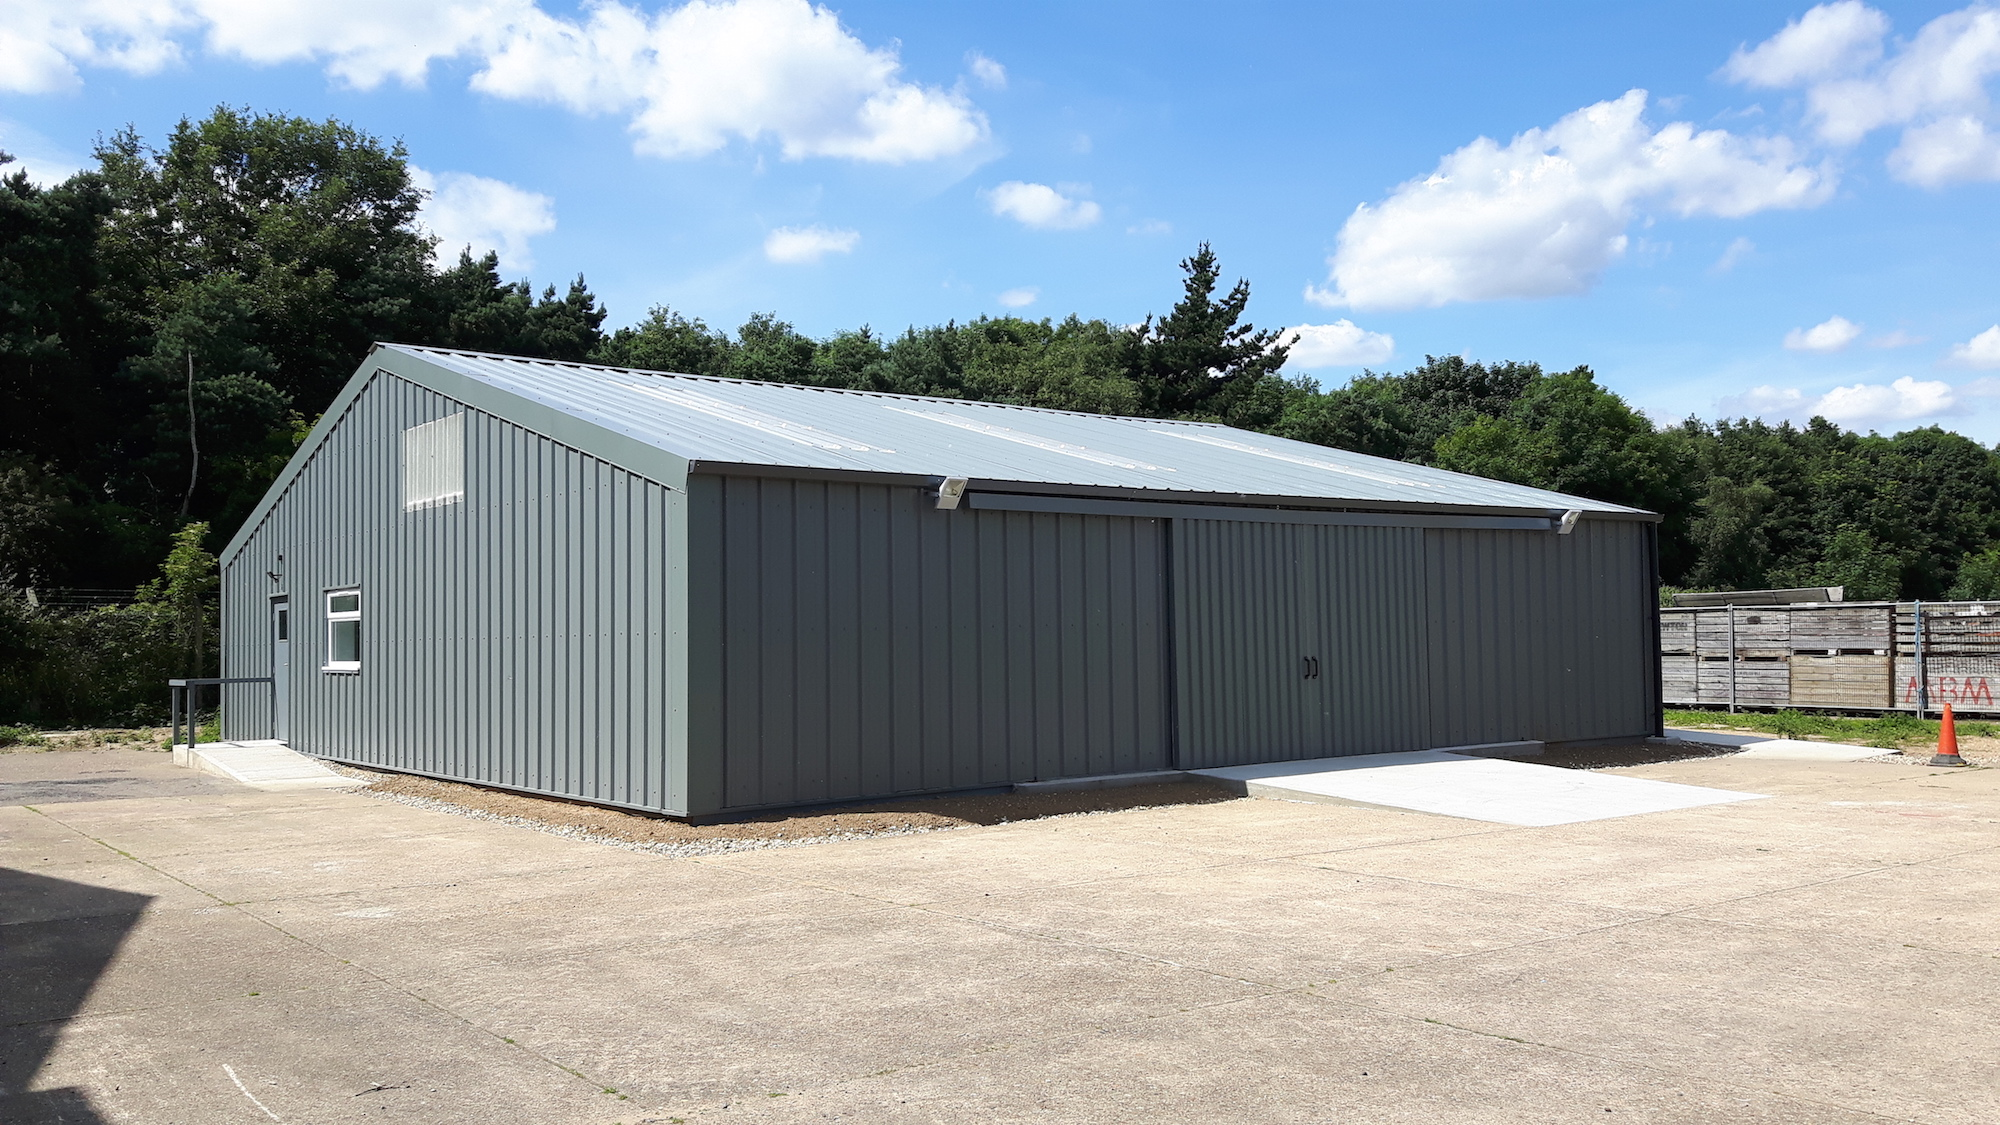 15-010-RAF-USAF-Washdown Shed-Barn-Industrial-Commercial-Finished-Warehouse-Conversion-Naturally Lit-External View-001.jpg